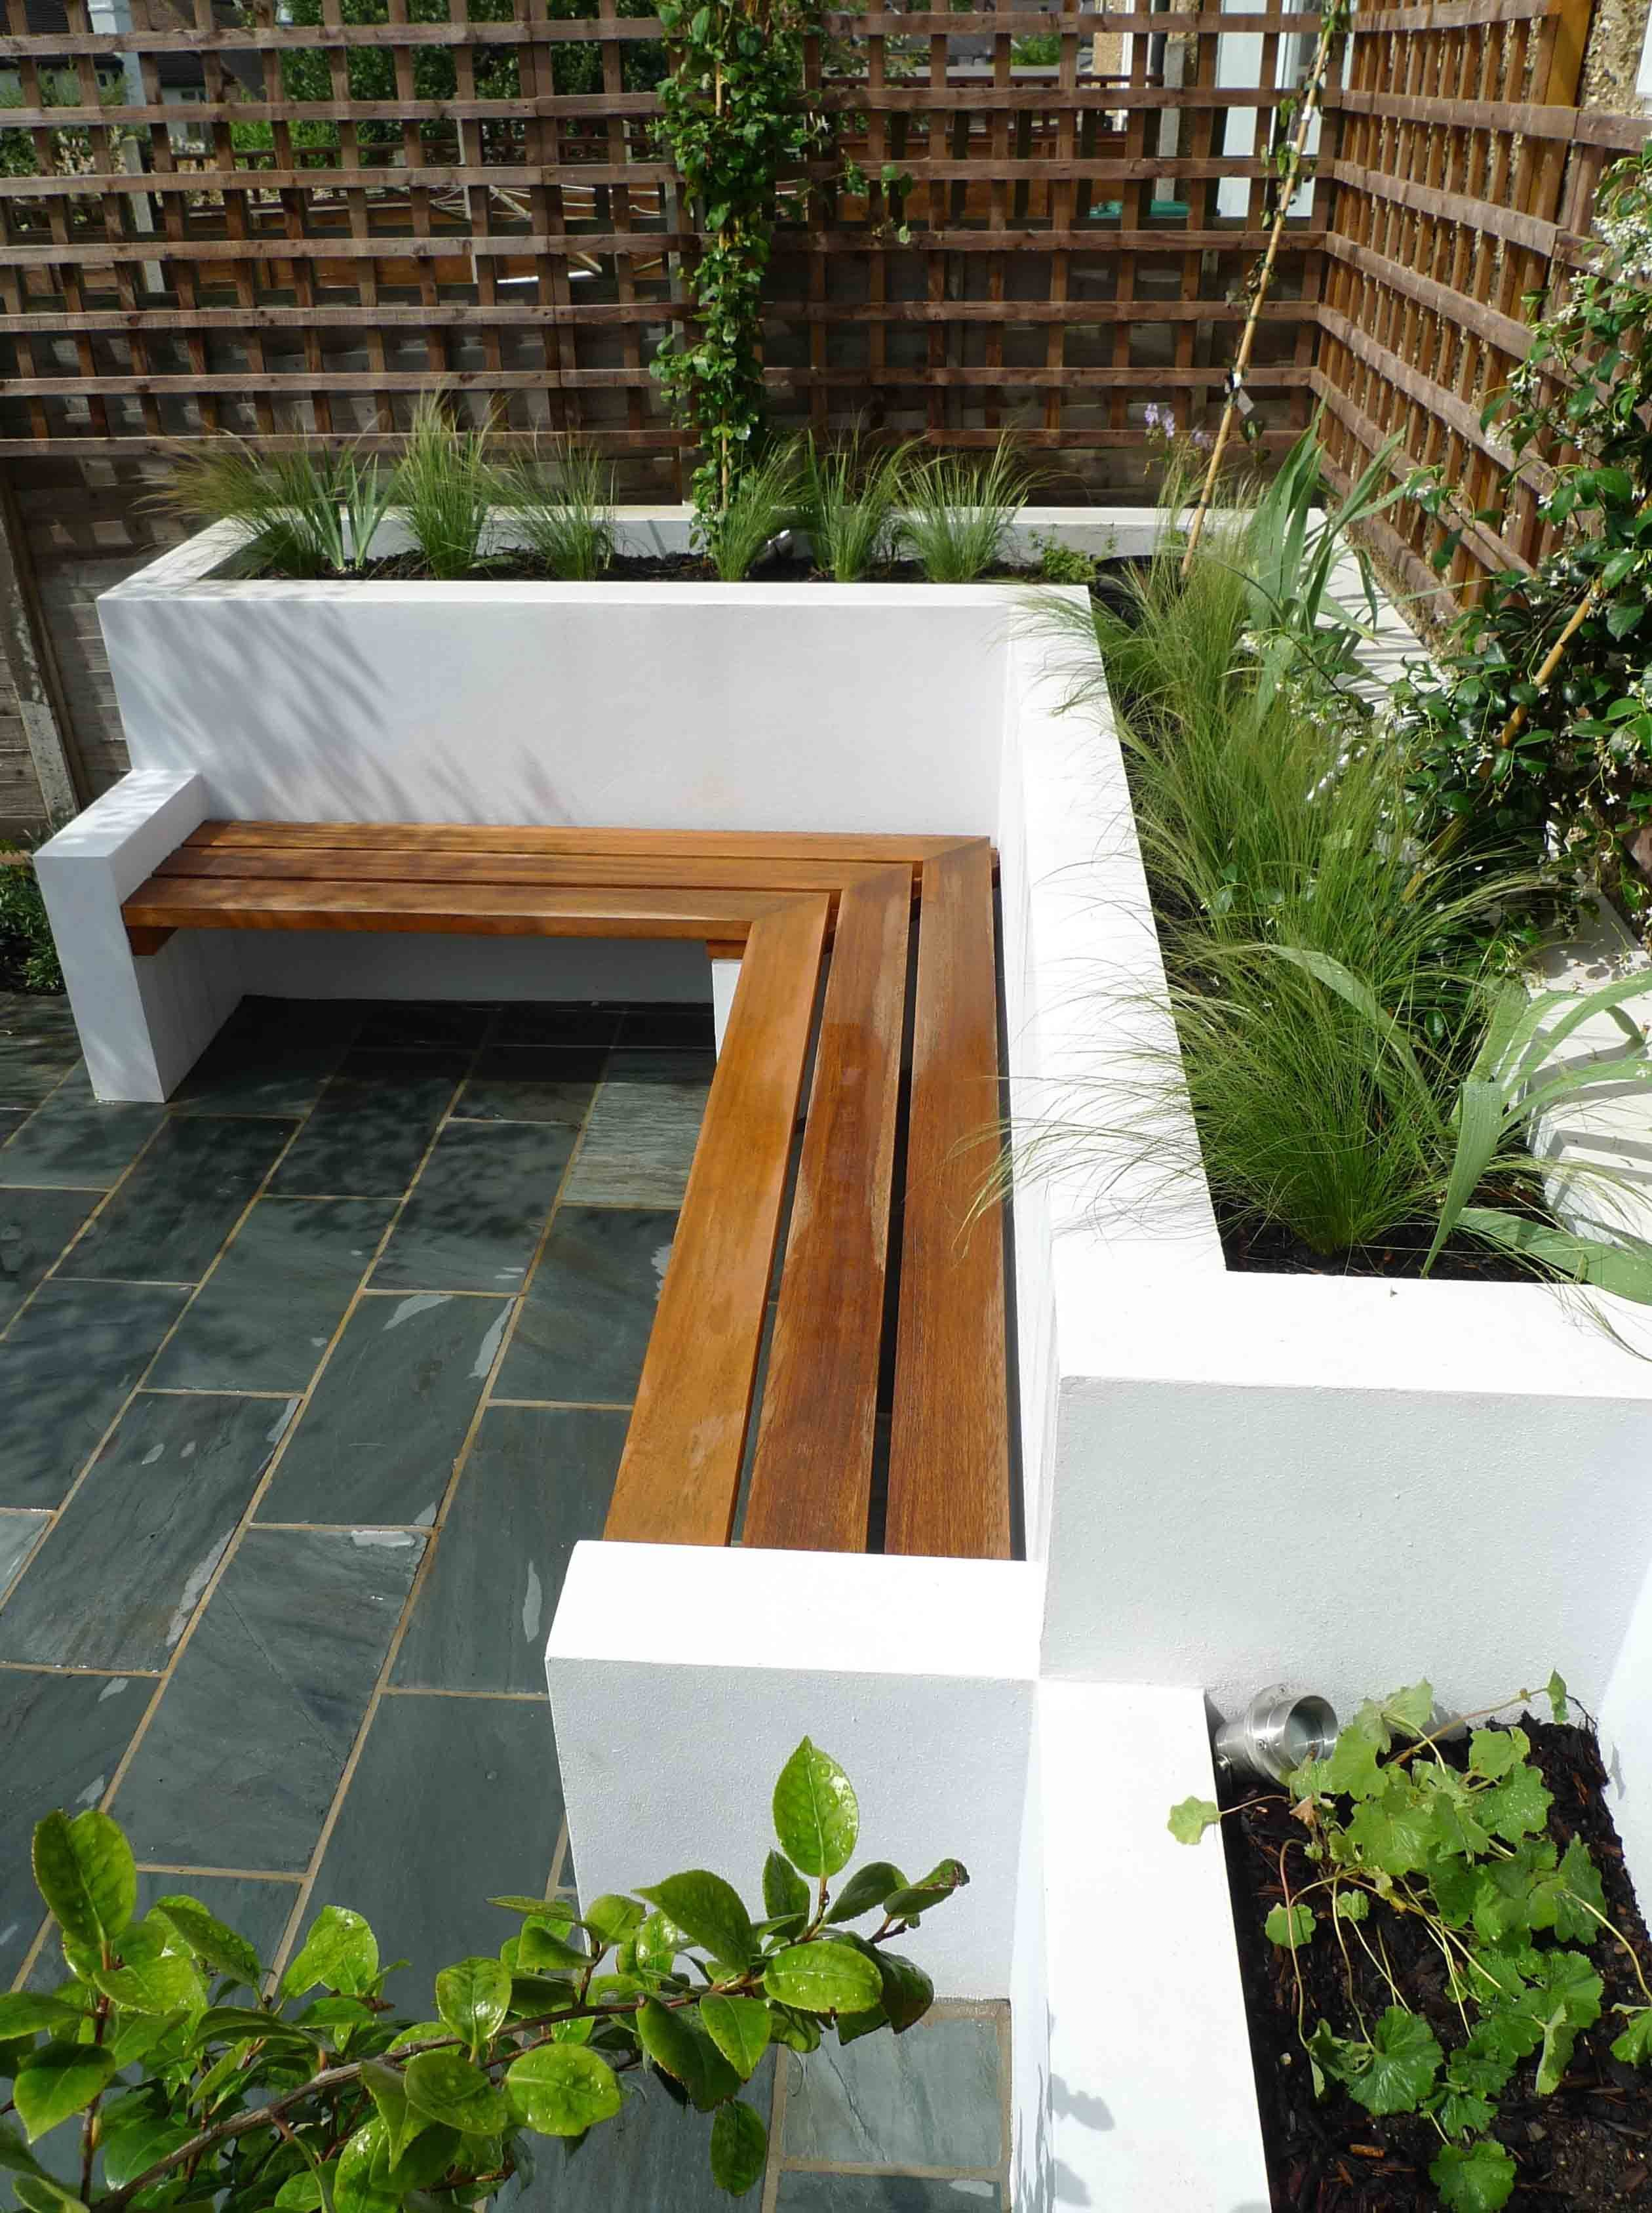 Delicieux Simple And Pretty Site Planning: Contemporary Garden Design, West Finchley